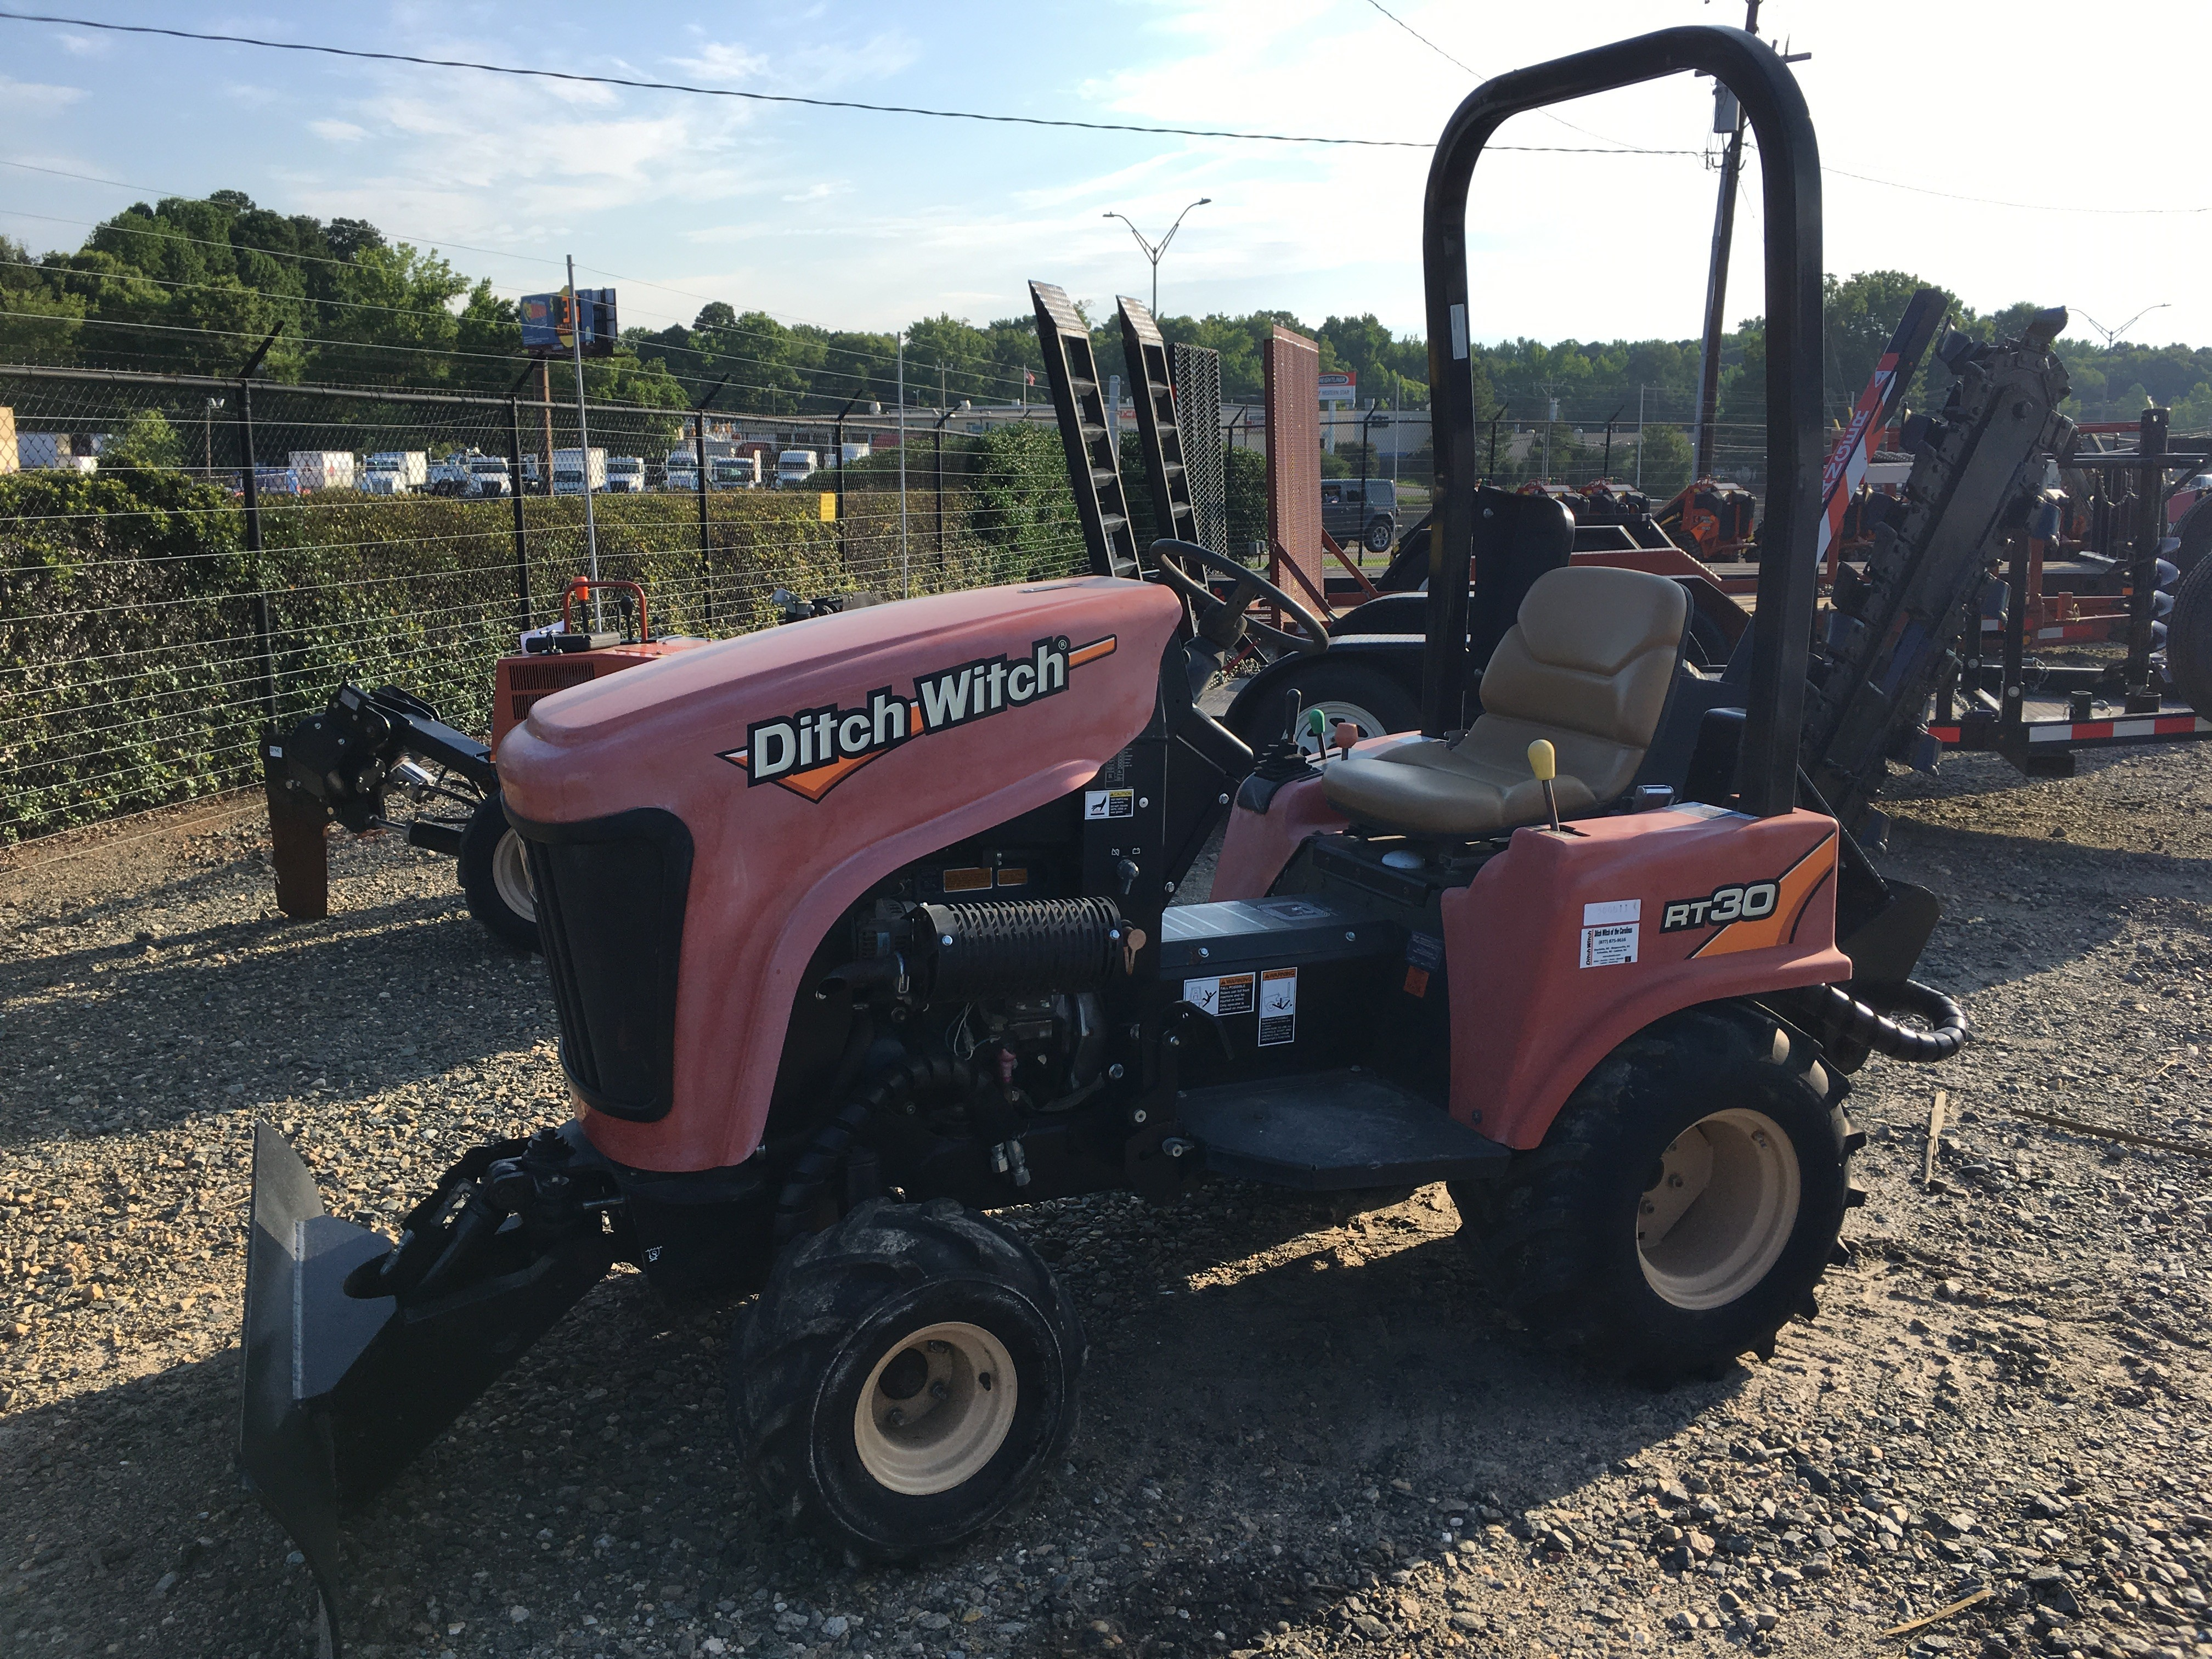 used, ditch witch, dwotc, trencher, backfill blade, kubota, diesel, sc, NC, ride-on, ride on